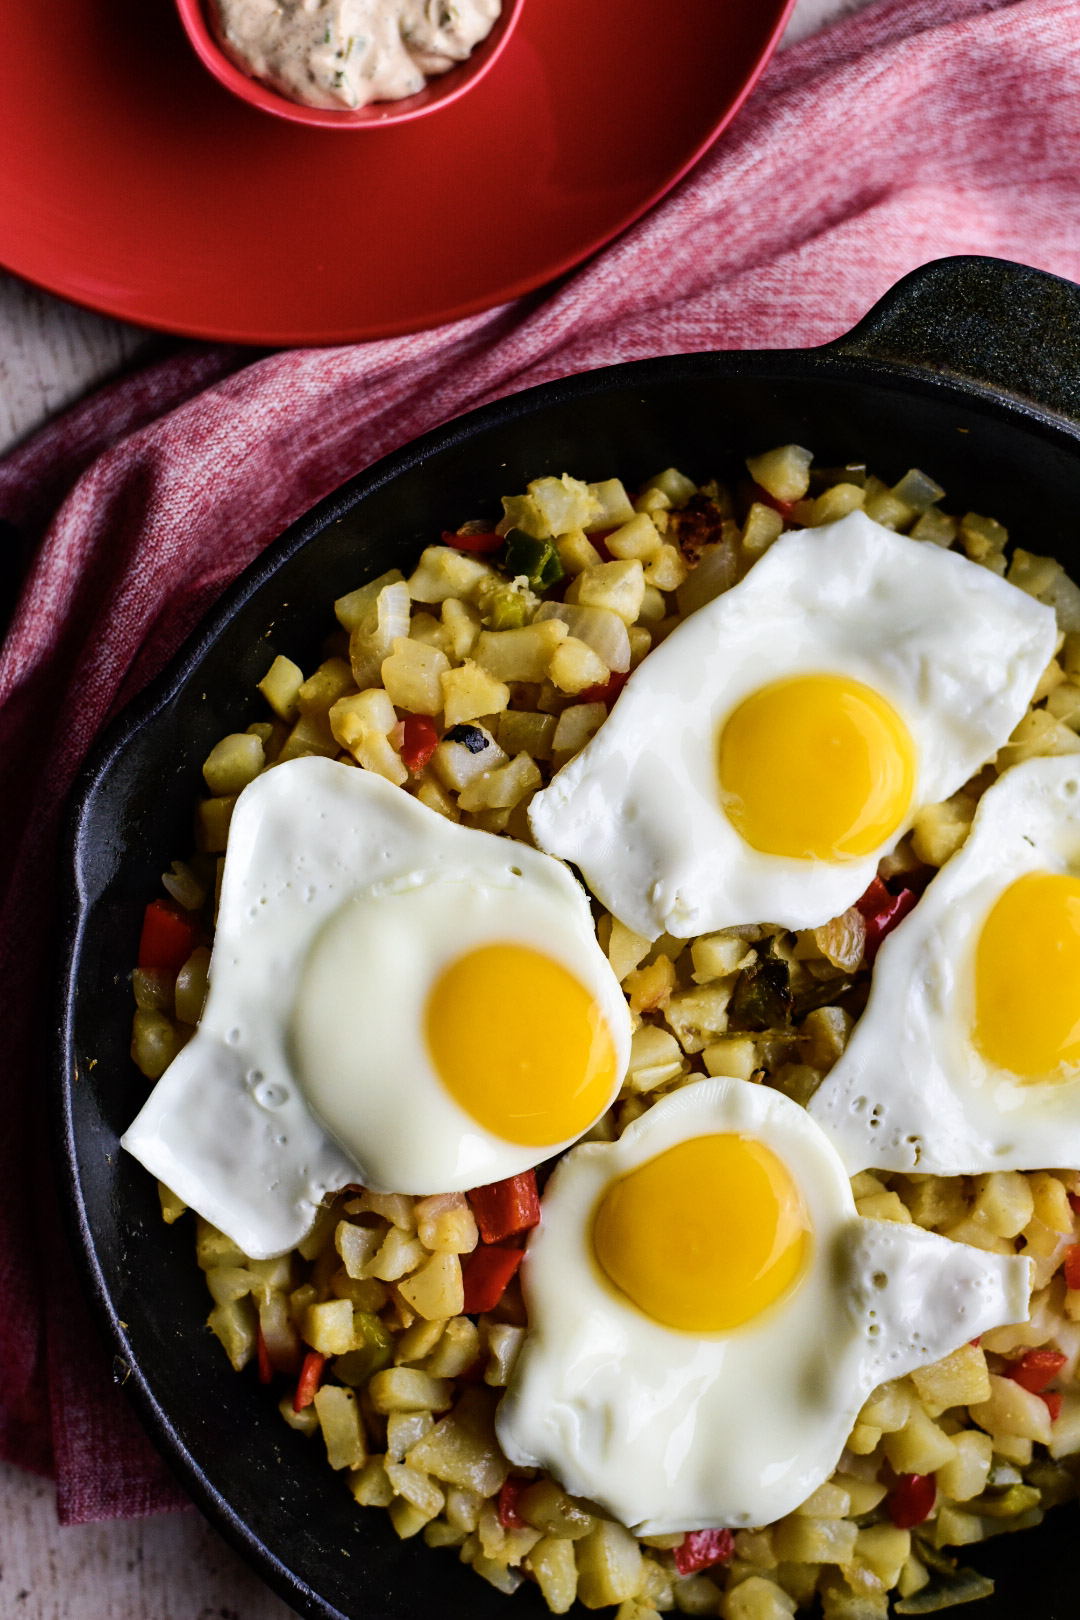 Overhead shot of Serving of Vegetable Breakfast Skillet without sauce